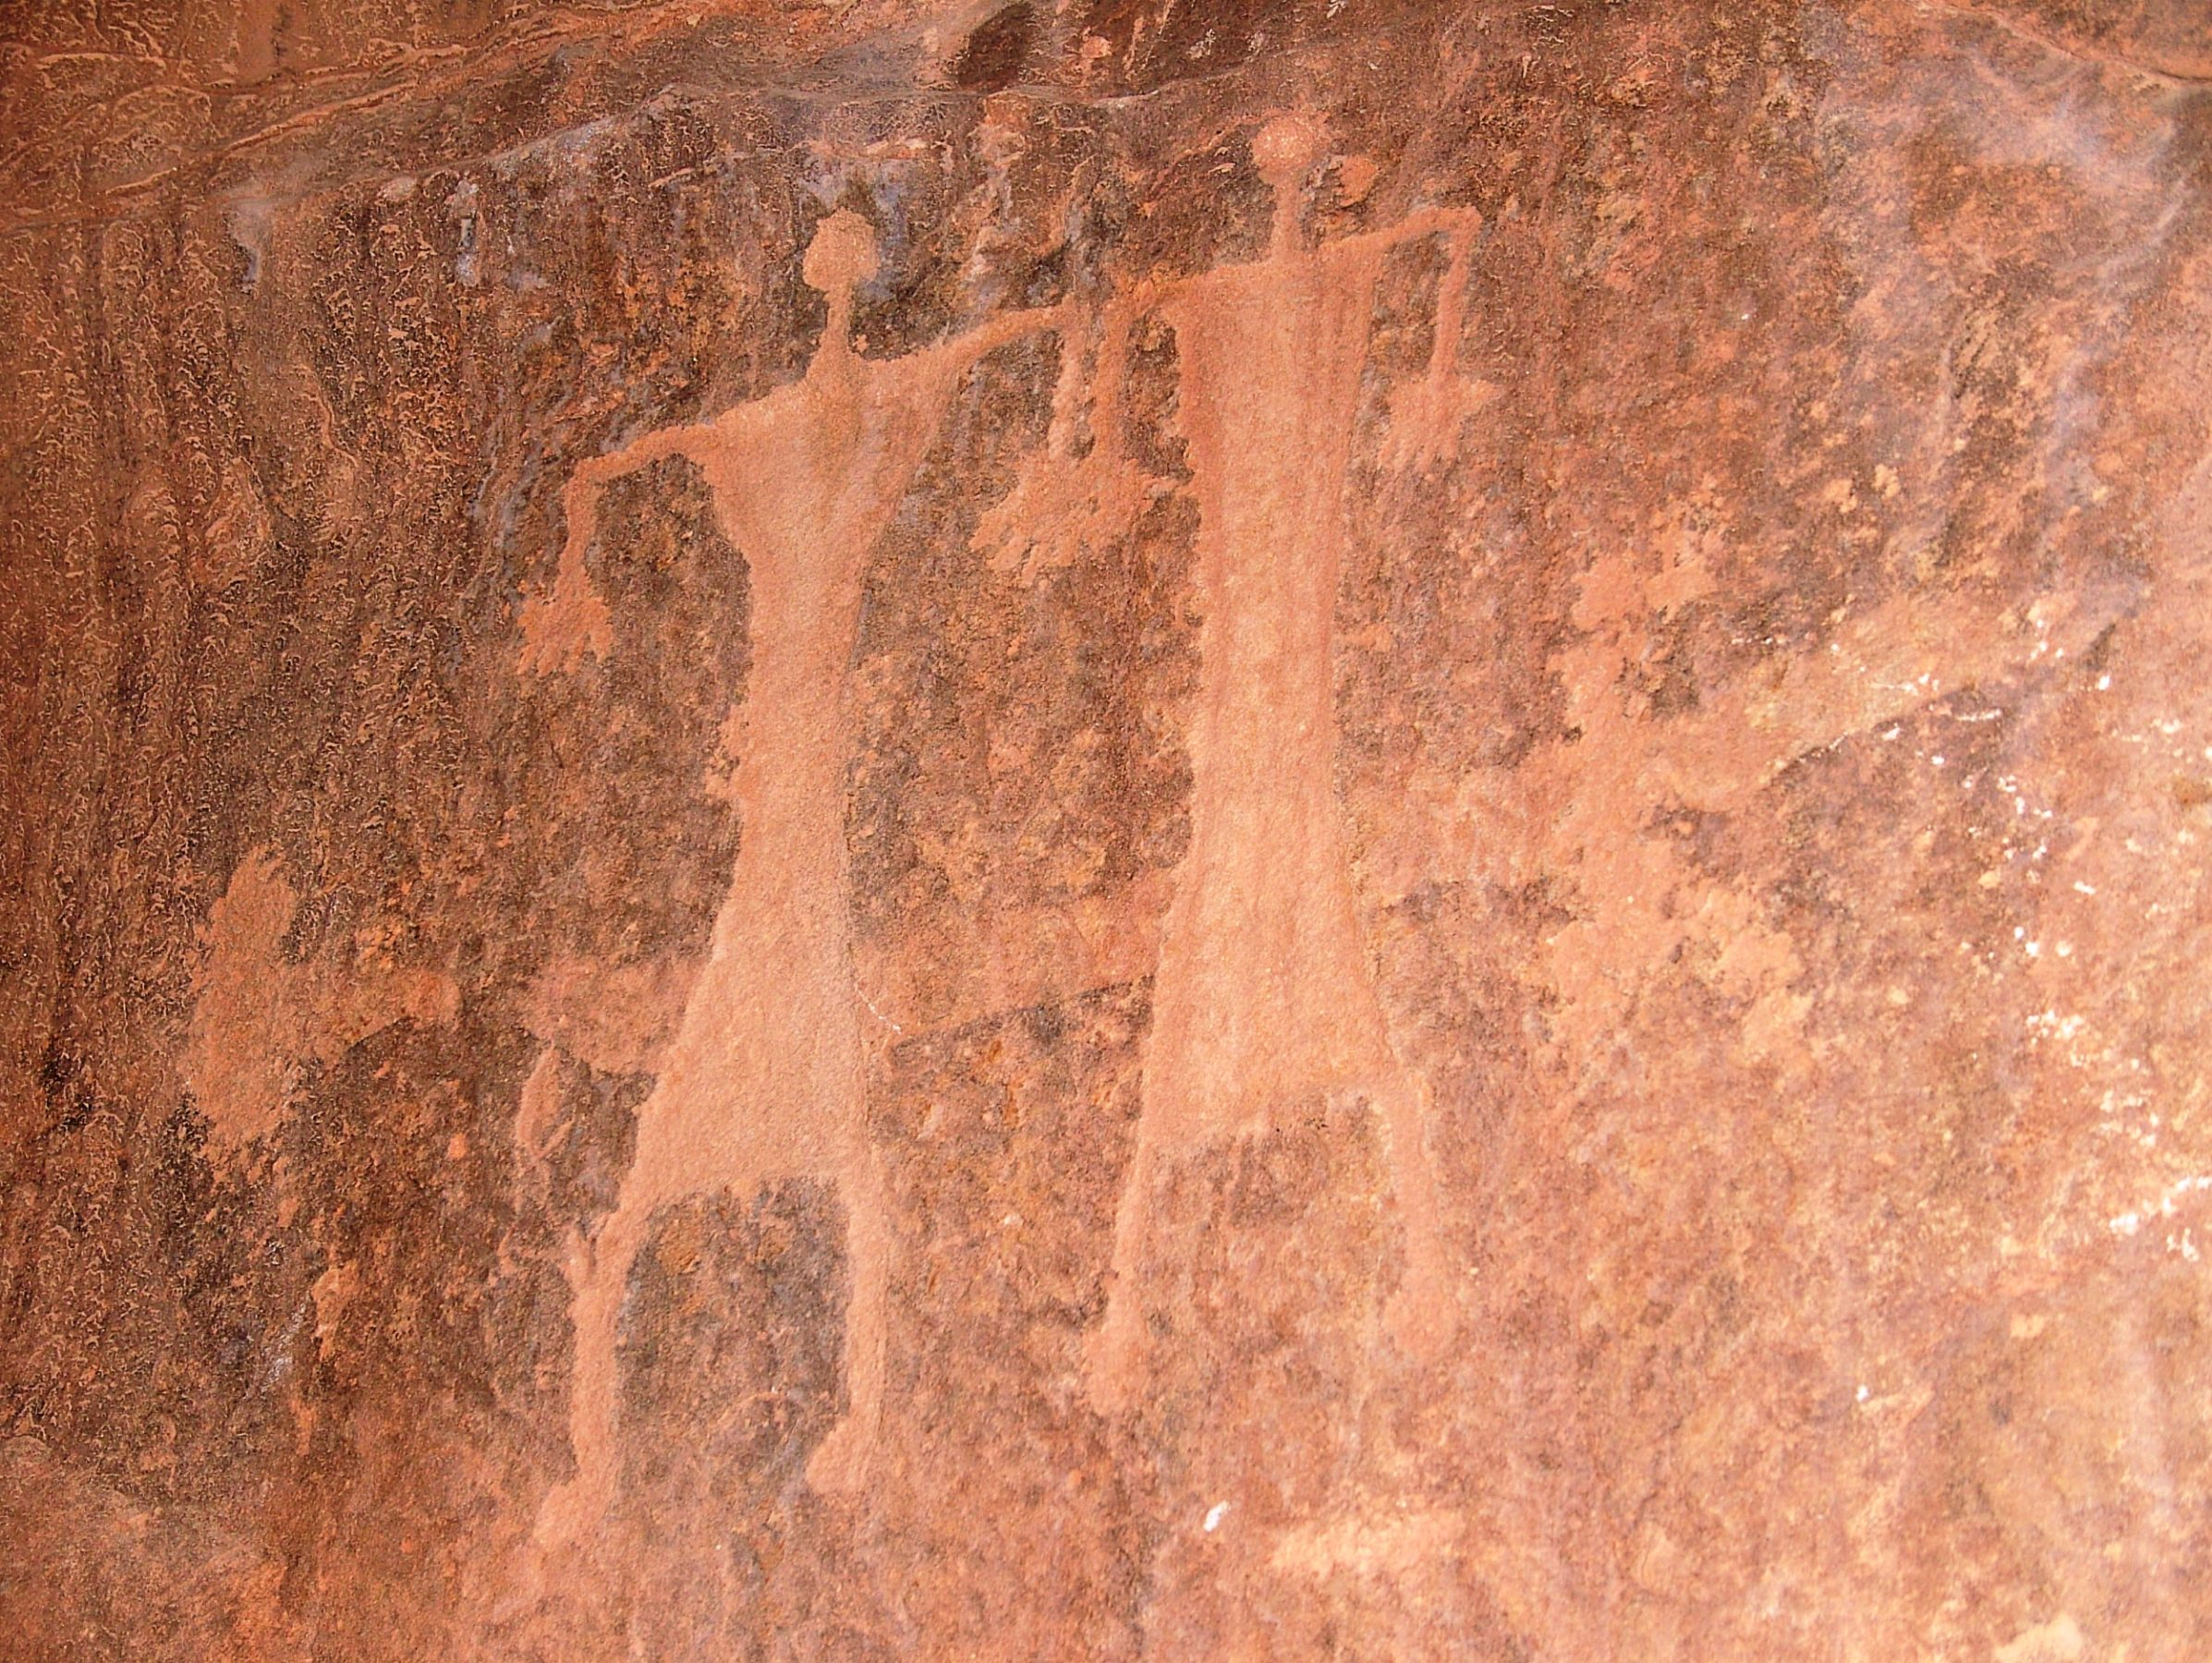 Close-up of a petroglyph of two people carved into a rock wall at Wadi Rum